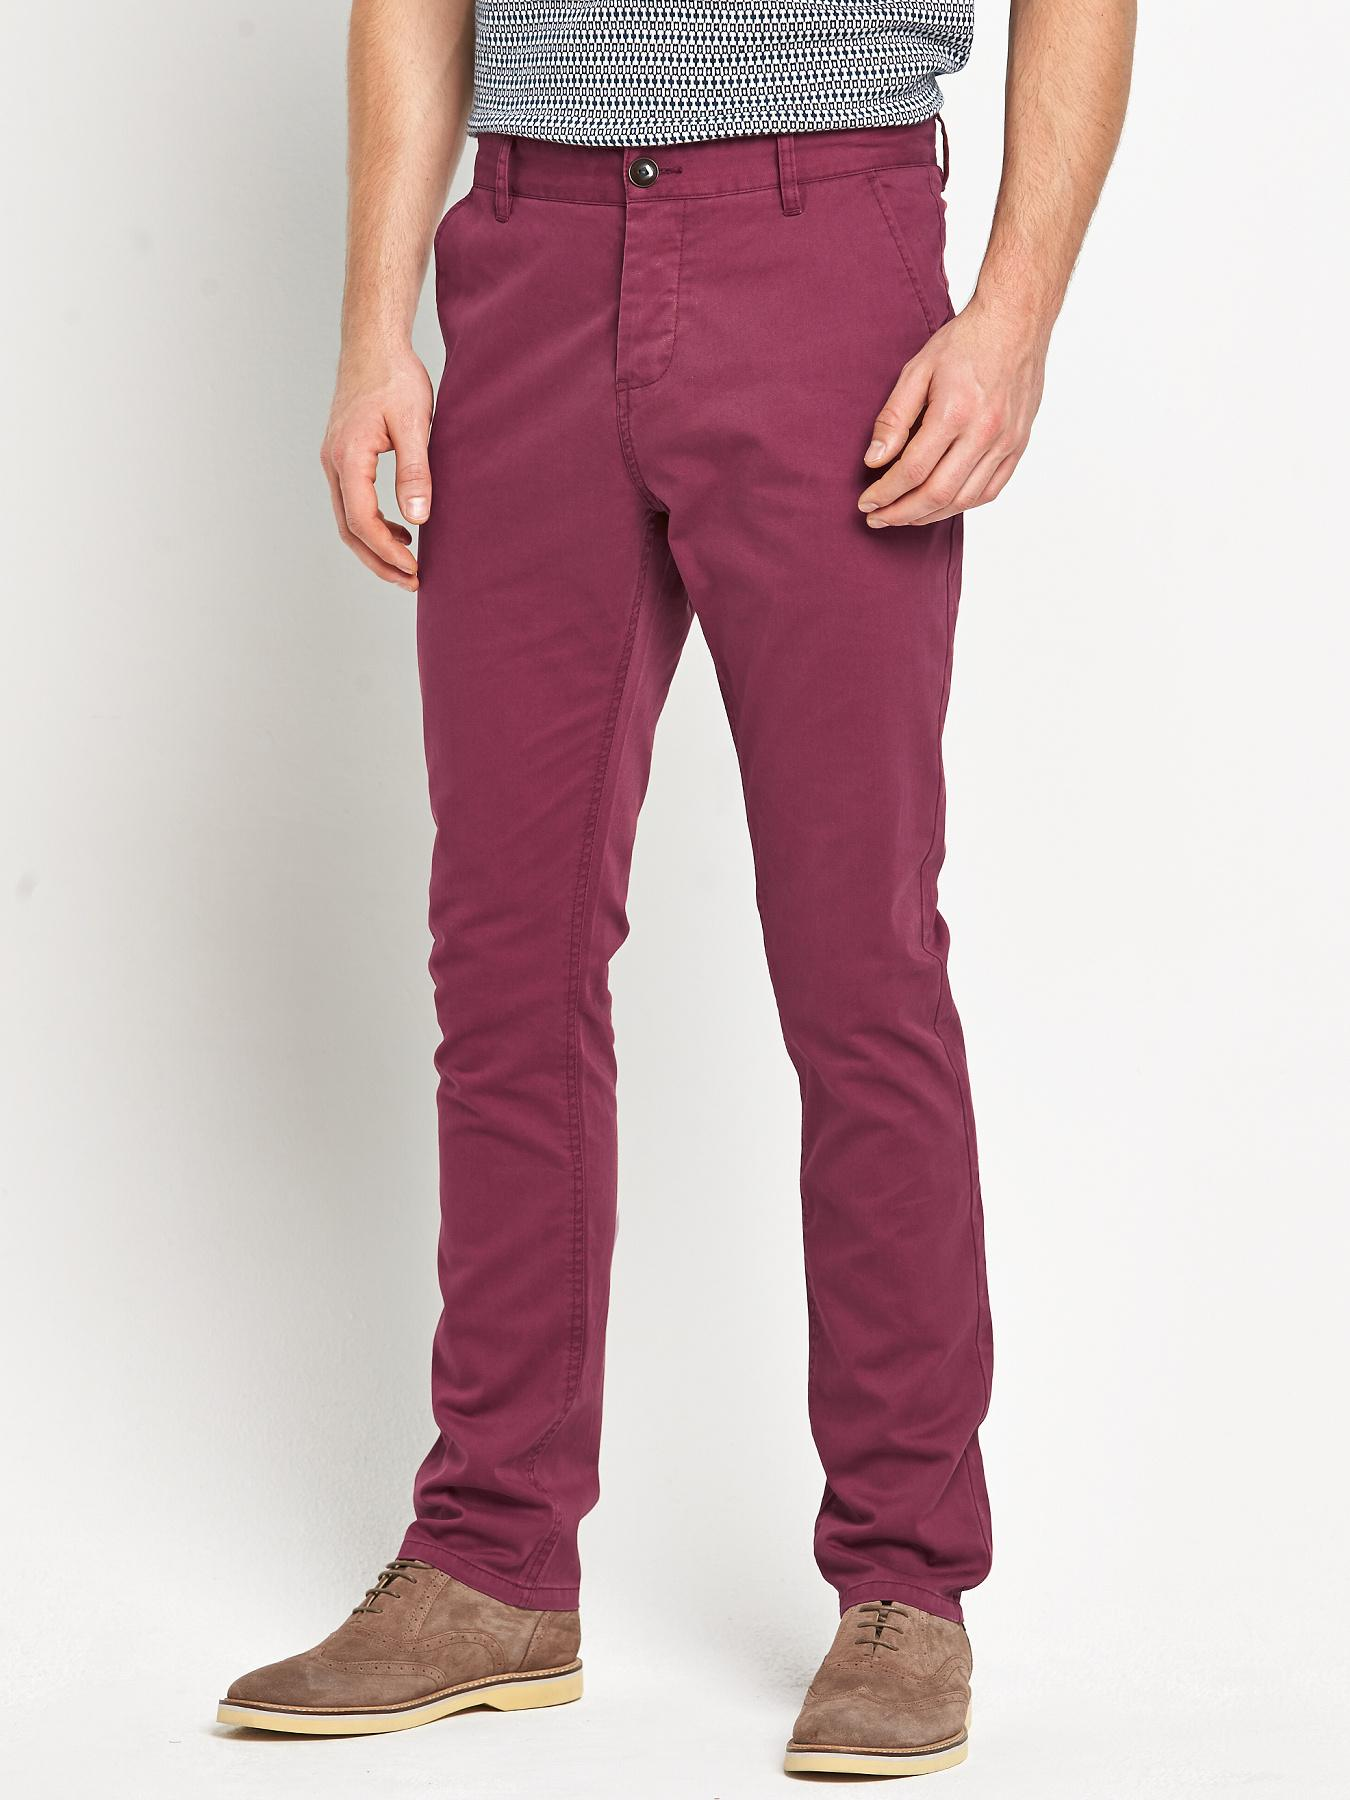 Goodsouls Mens Slim Fit Chinos